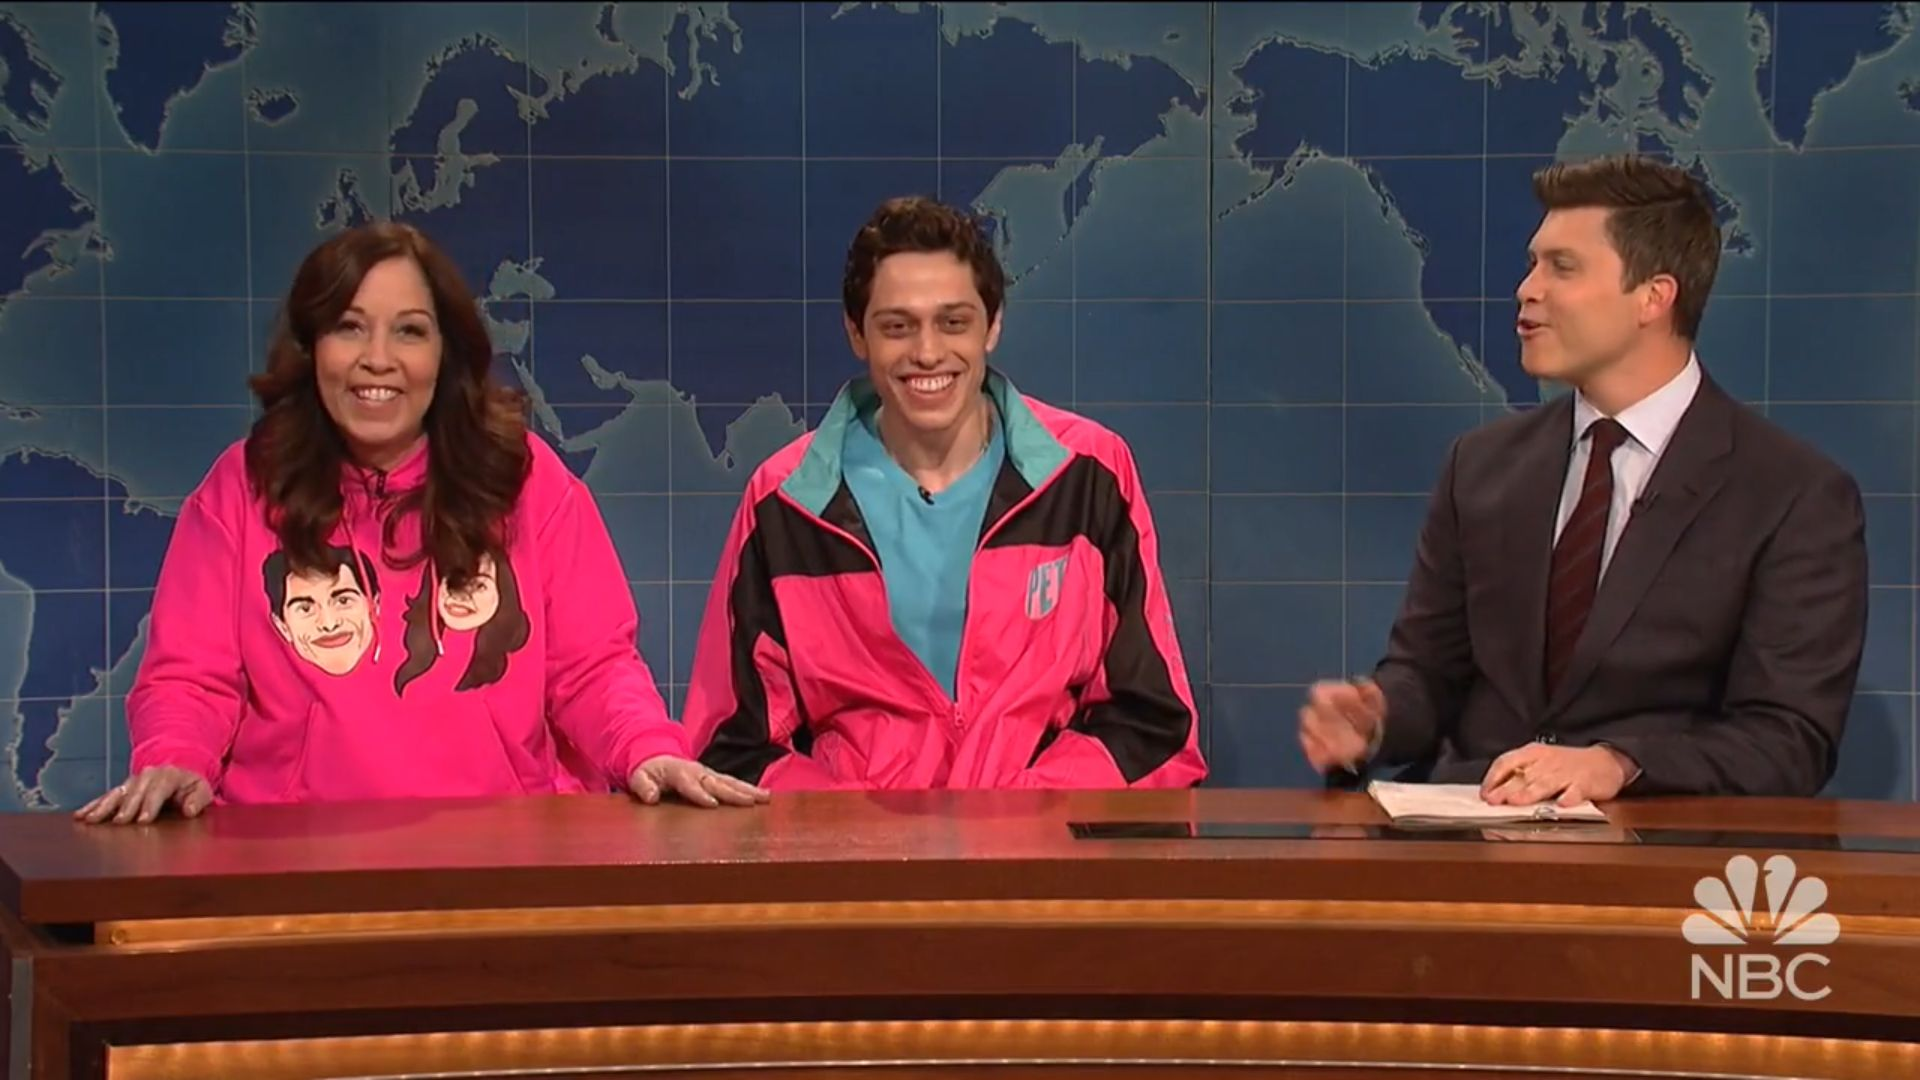 Pete Davidson brought his mother, Amy Davidson, on stage during Weekend Edition.